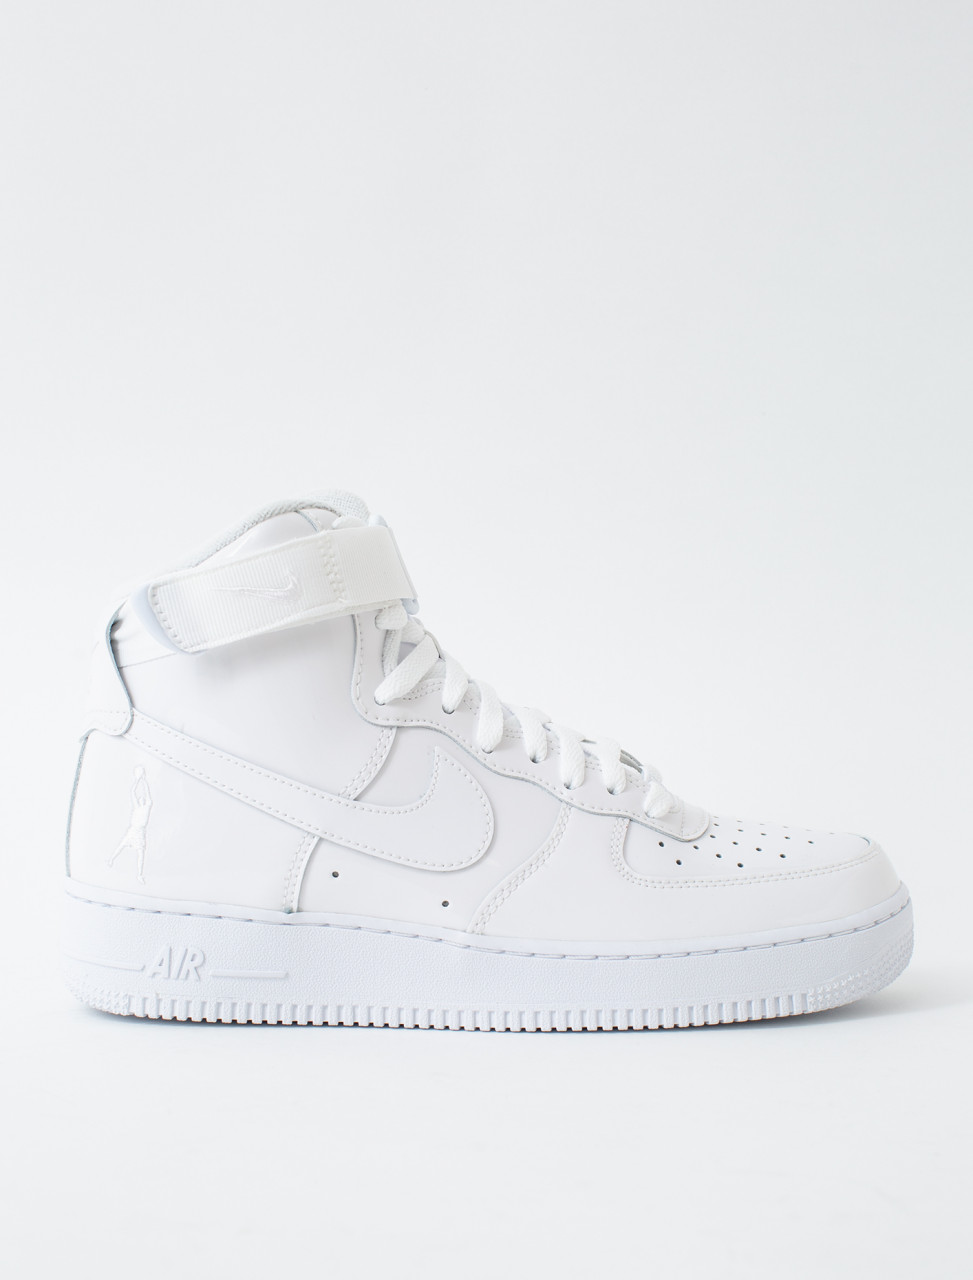 online store aa91b 83ec4 Air Force 1 High Retro QS Sneaker